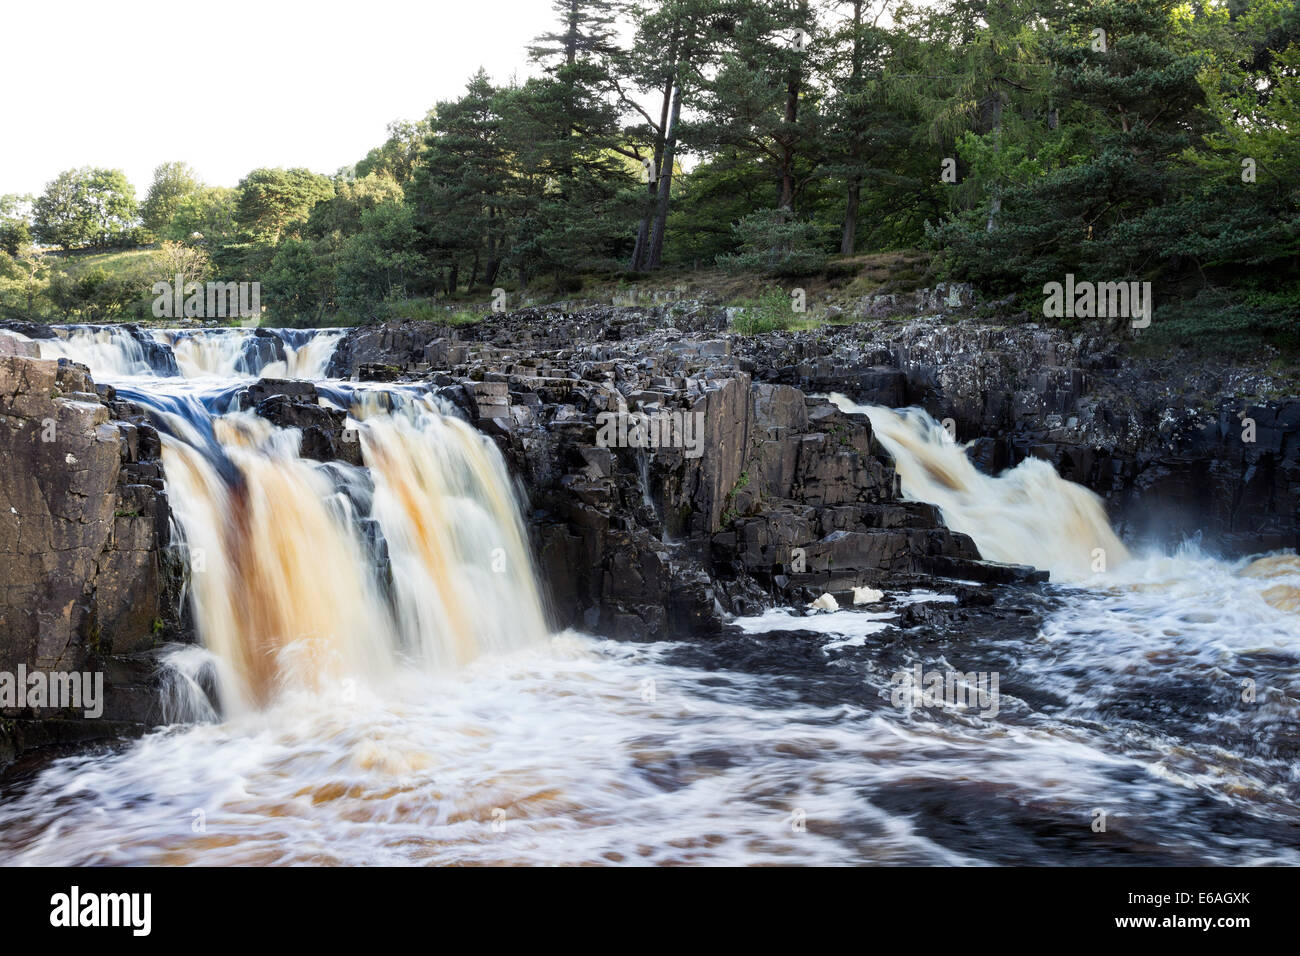 The River Tees at Low Force Bowlees, Upper Teesdale, County Durham, UK - Stock Image